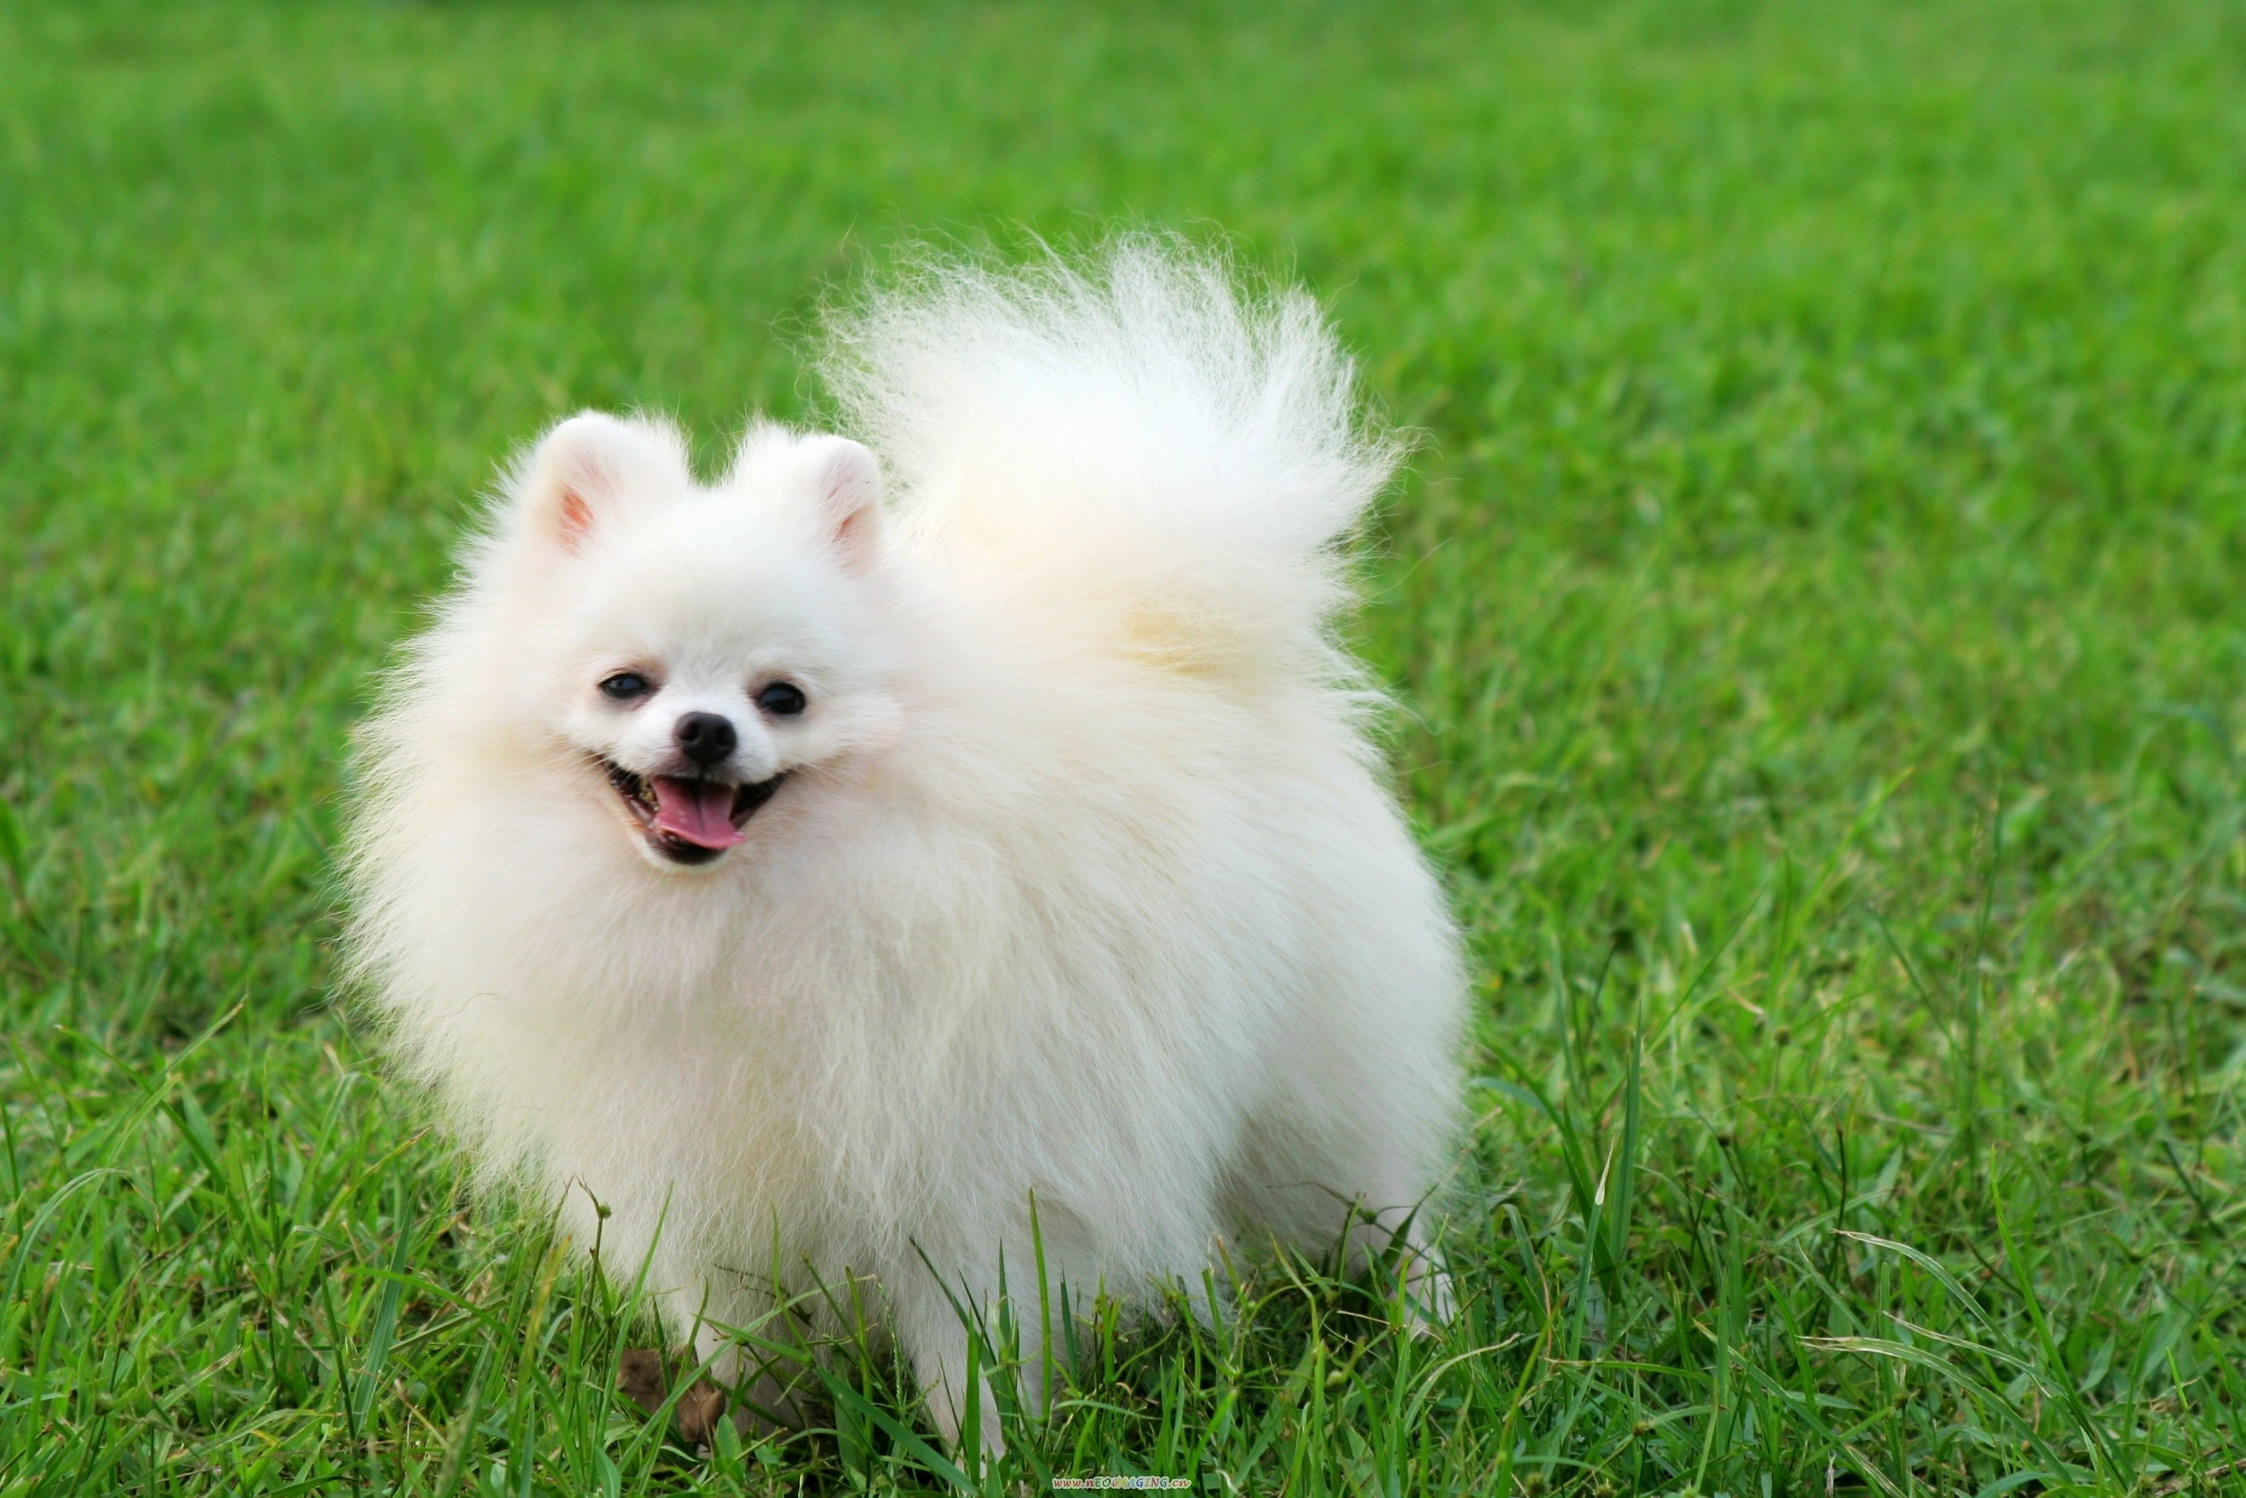 Cute Pomeranian Dog 8 Jpg Hd Wallpapers Hd Images Hd Pictures